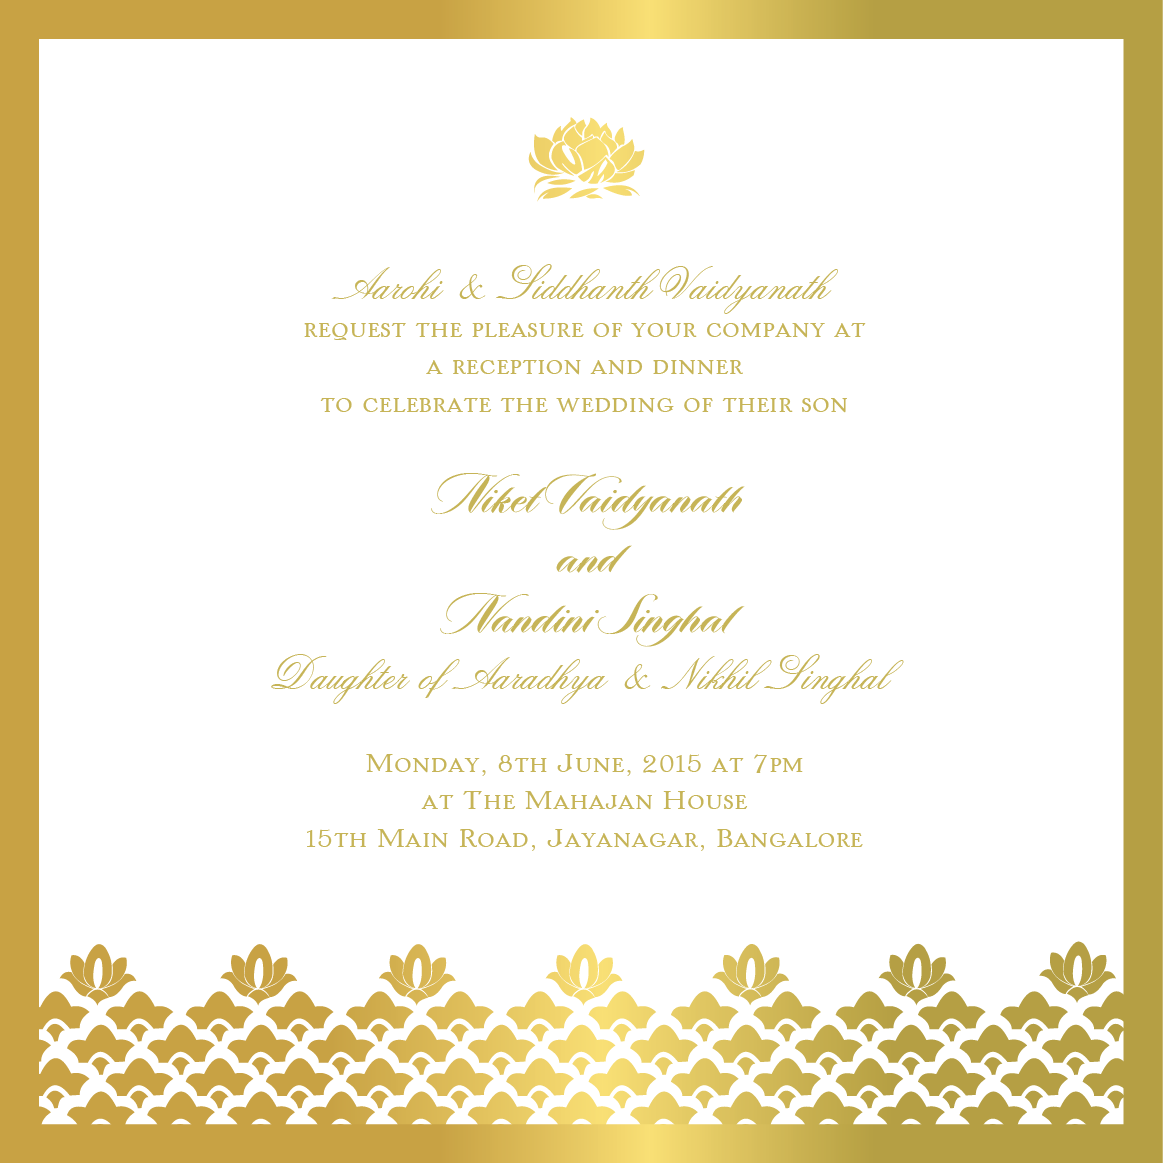 rezilta zimaz pour indian wedding reception card reception in 2018